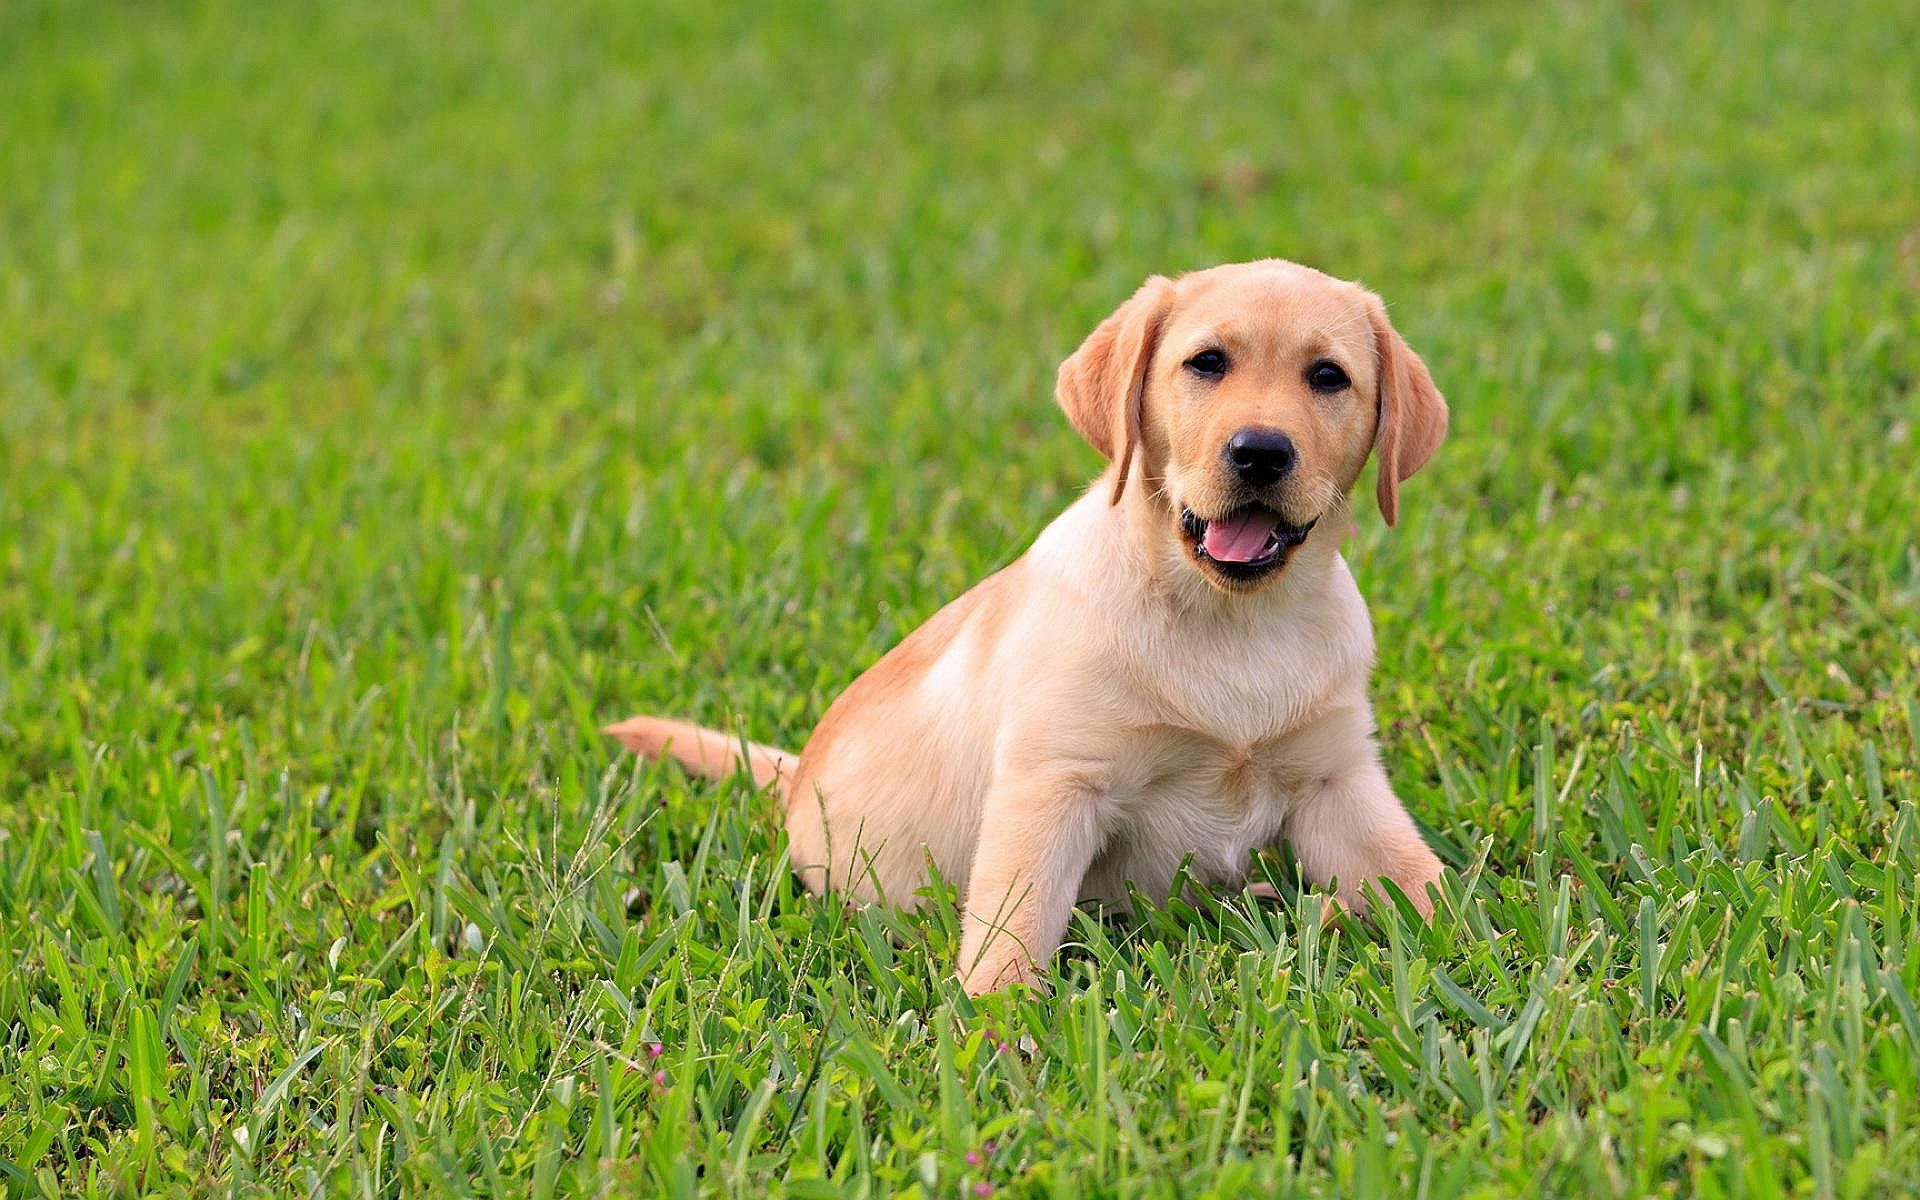 Puppy Time Pictures For Background Cute Labrador Puppies Puppy Wallpaper Cute Puppy Wallpaper